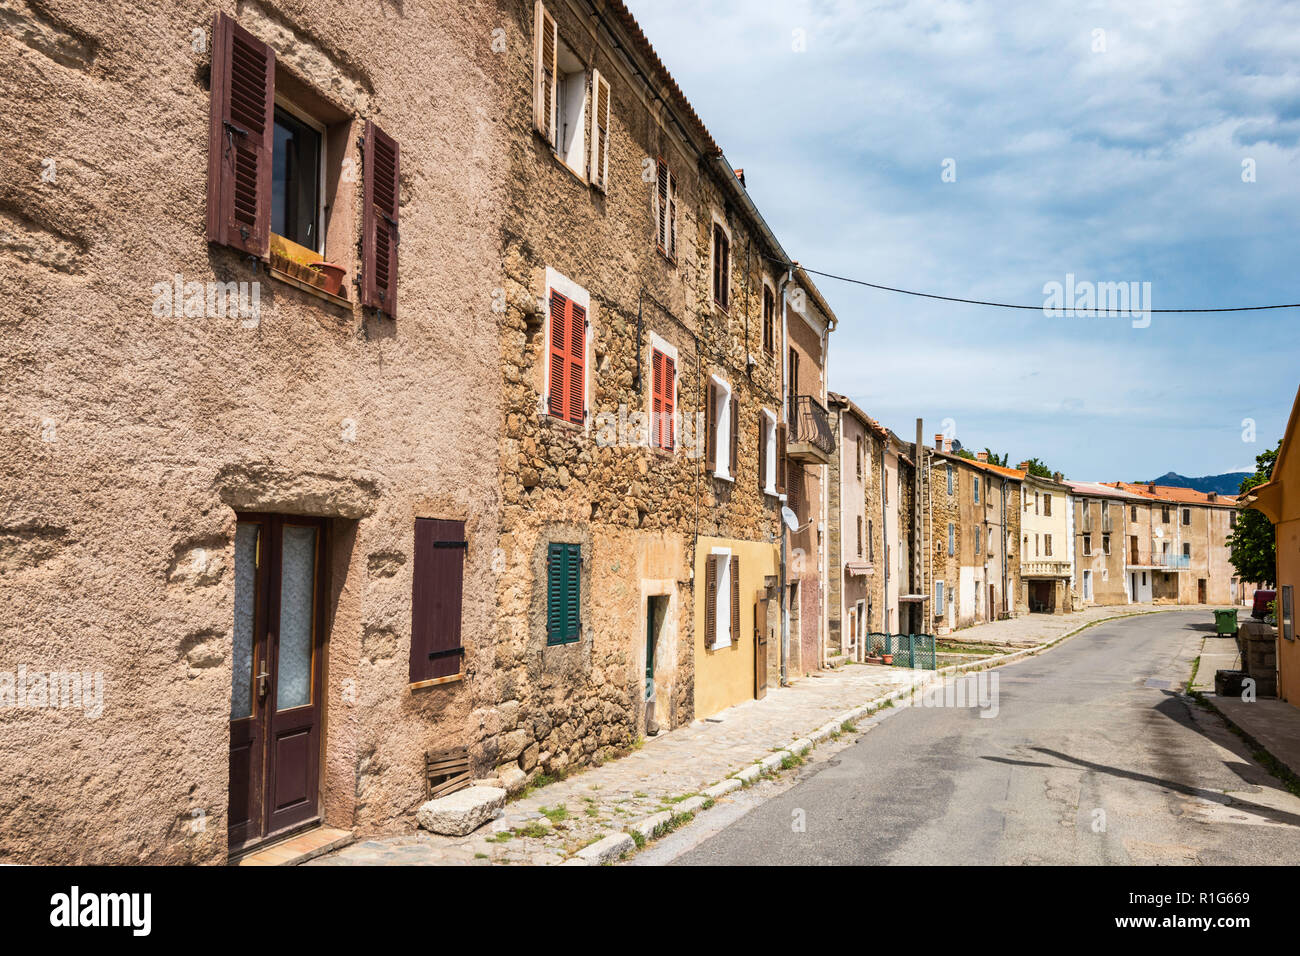 Houses in hill town of Albertacce in Golo River Valley, below Monte Cinto massif, Niolo region, Haute-Corse department, Corsica, France - Stock Image